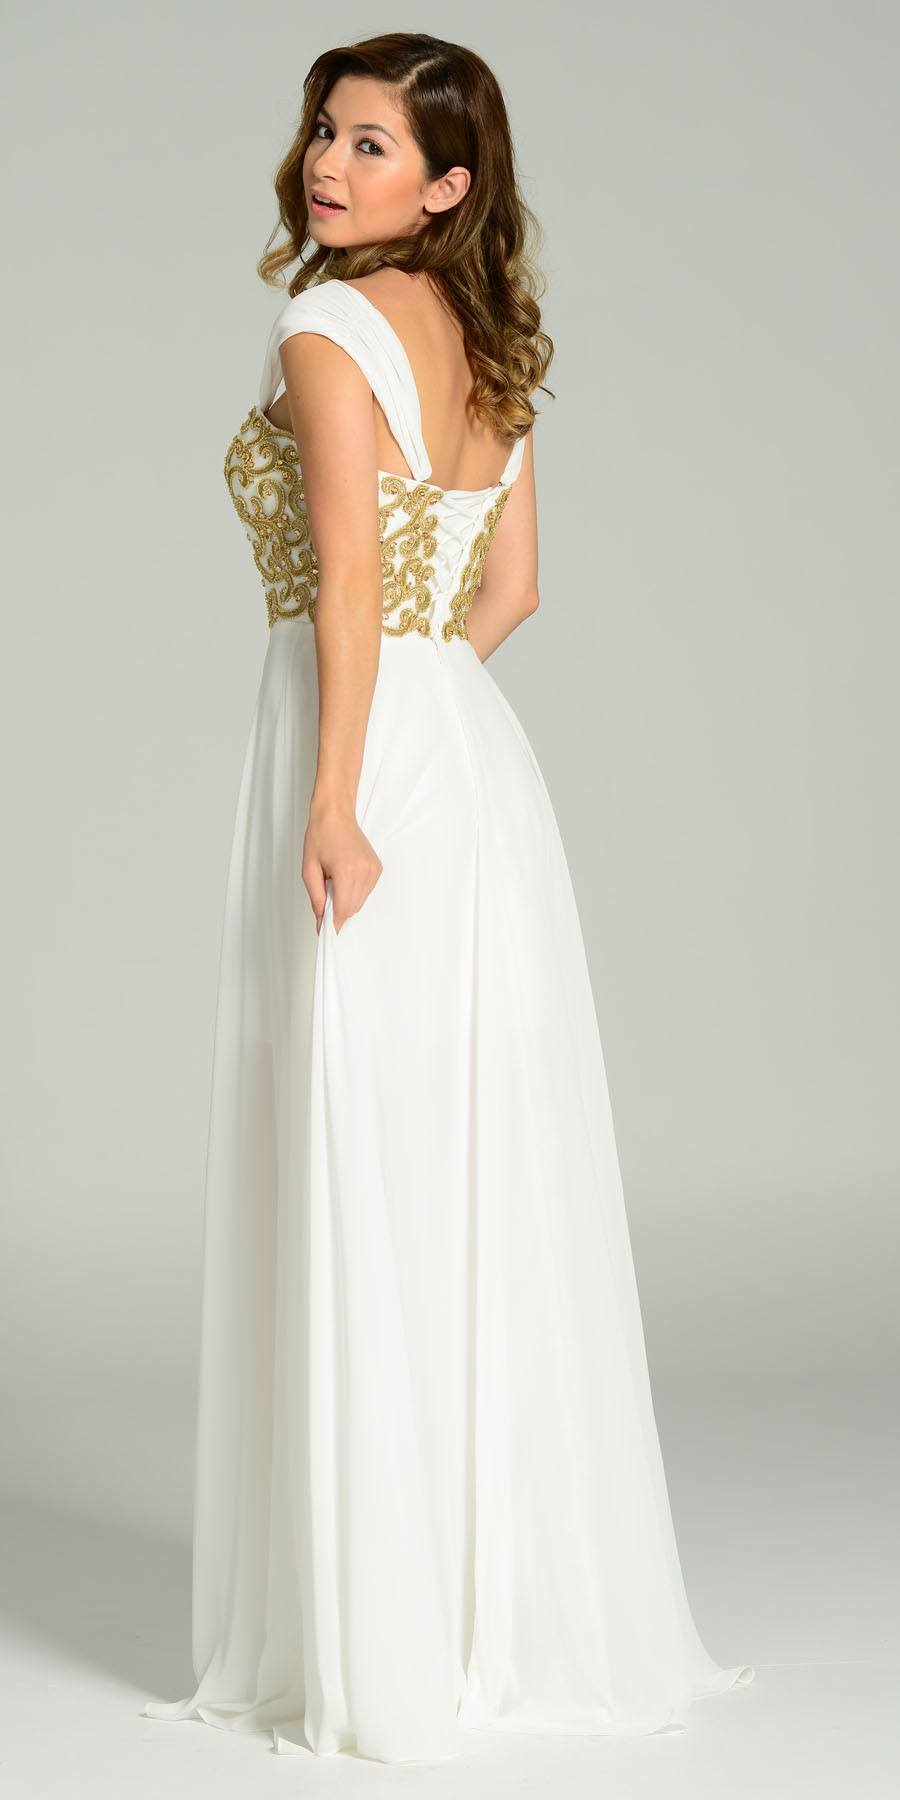 513cca42cf24 ... Full Length Chiffon Spanish Style Off White Gold Dress Off Shoulder  Lace Applique Back View ...